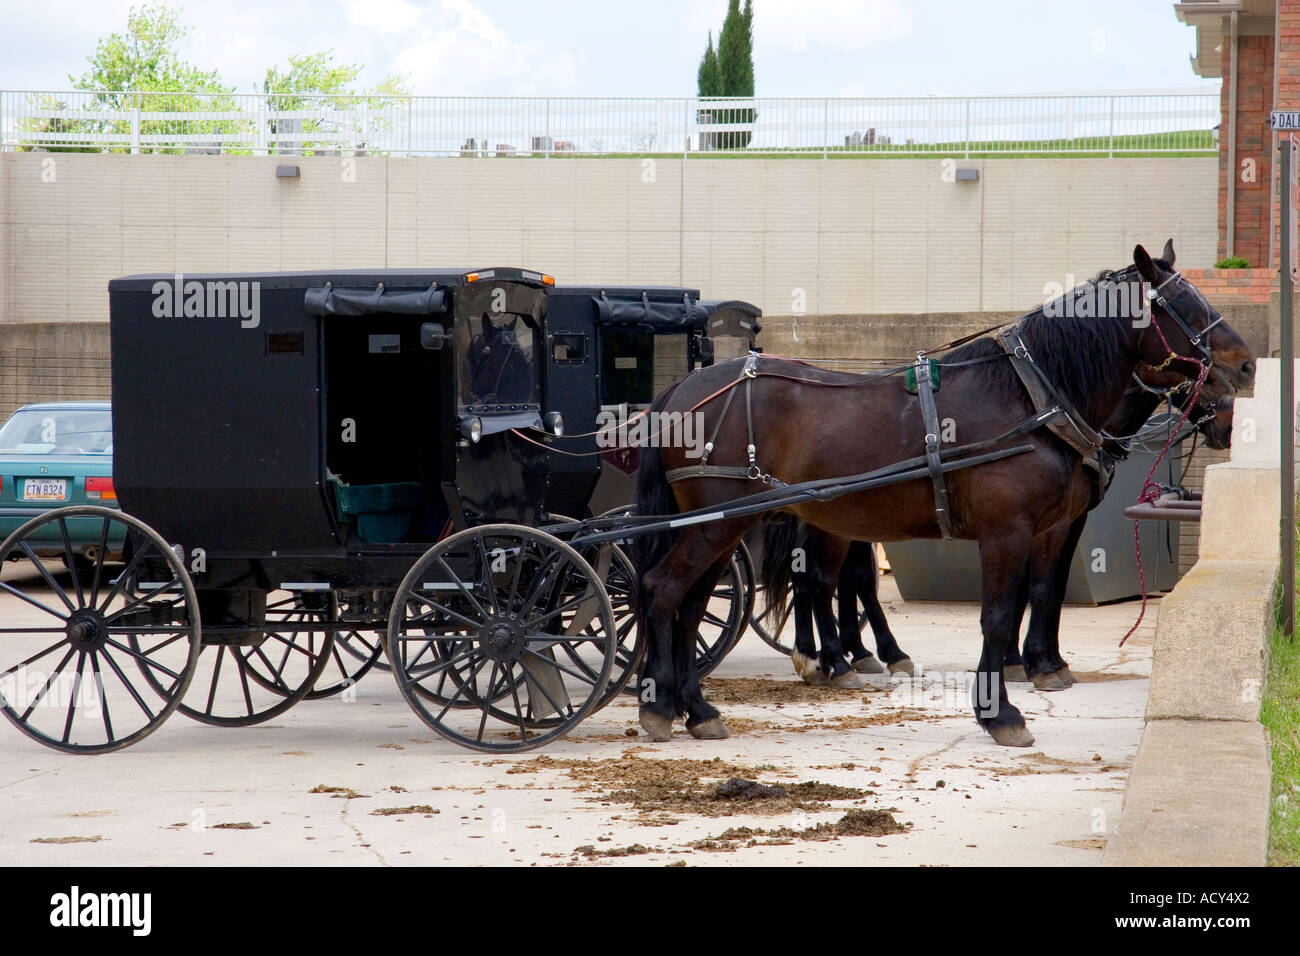 Amish horse and buggy in a parking lot at berlin ohio stock image